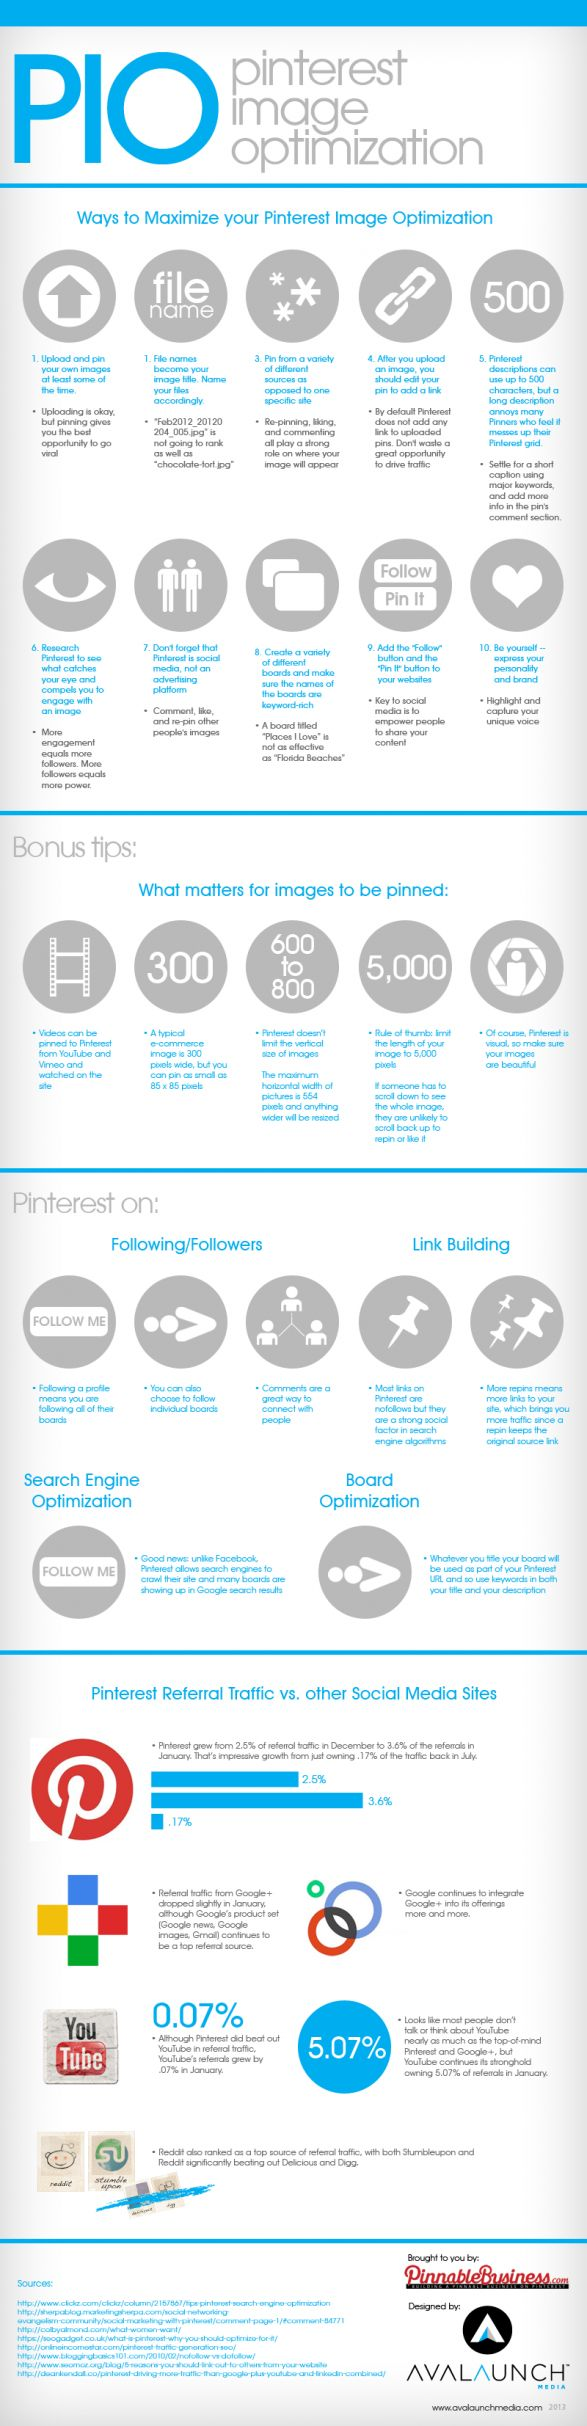 Pinterest Image Optimization | inphograph | useful data points, easy to understand place to start learning | #pinterest #learninginfographic #imageoptimization